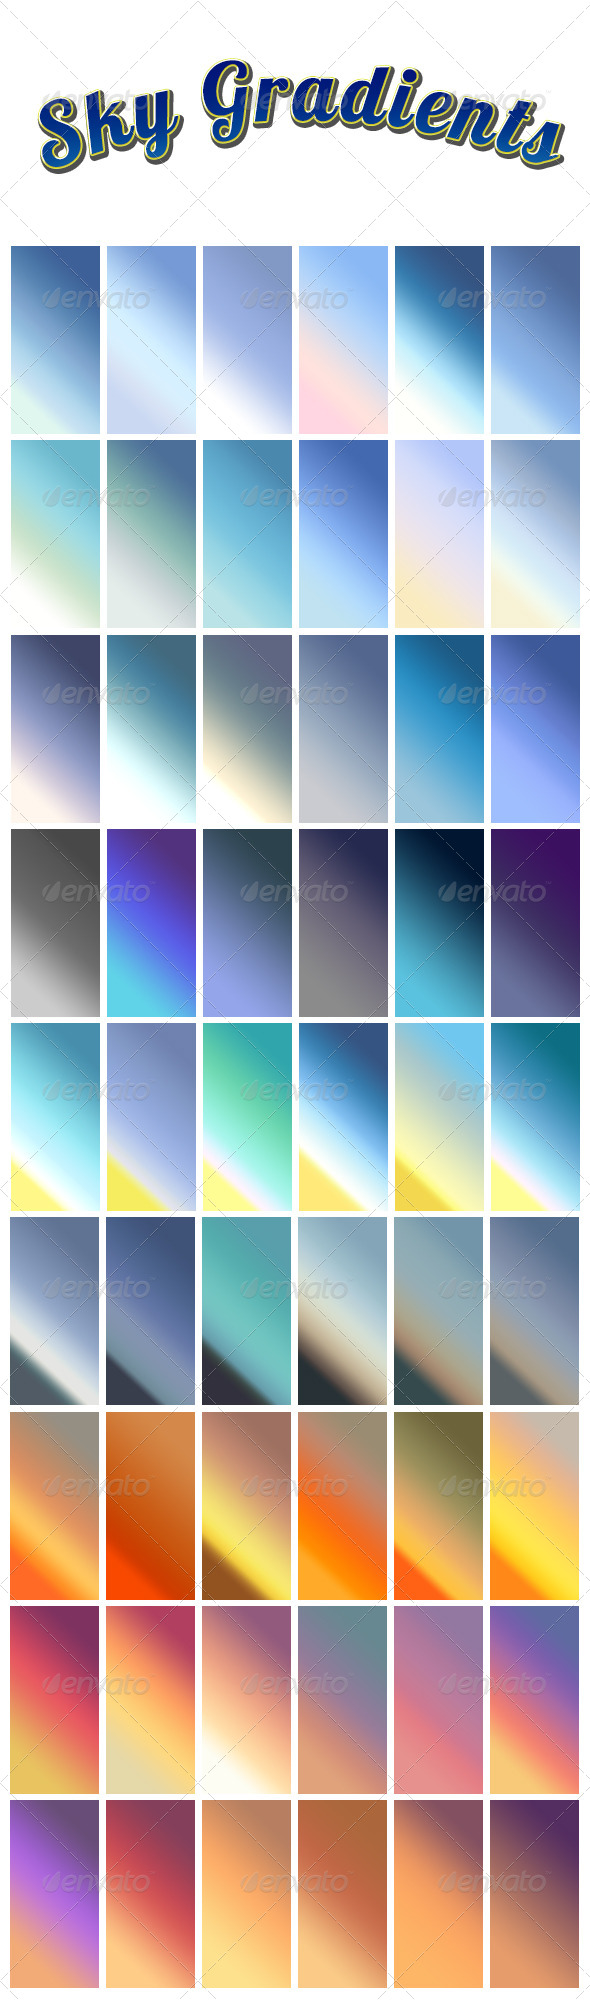 GraphicRiver Sky Gradients 5358287